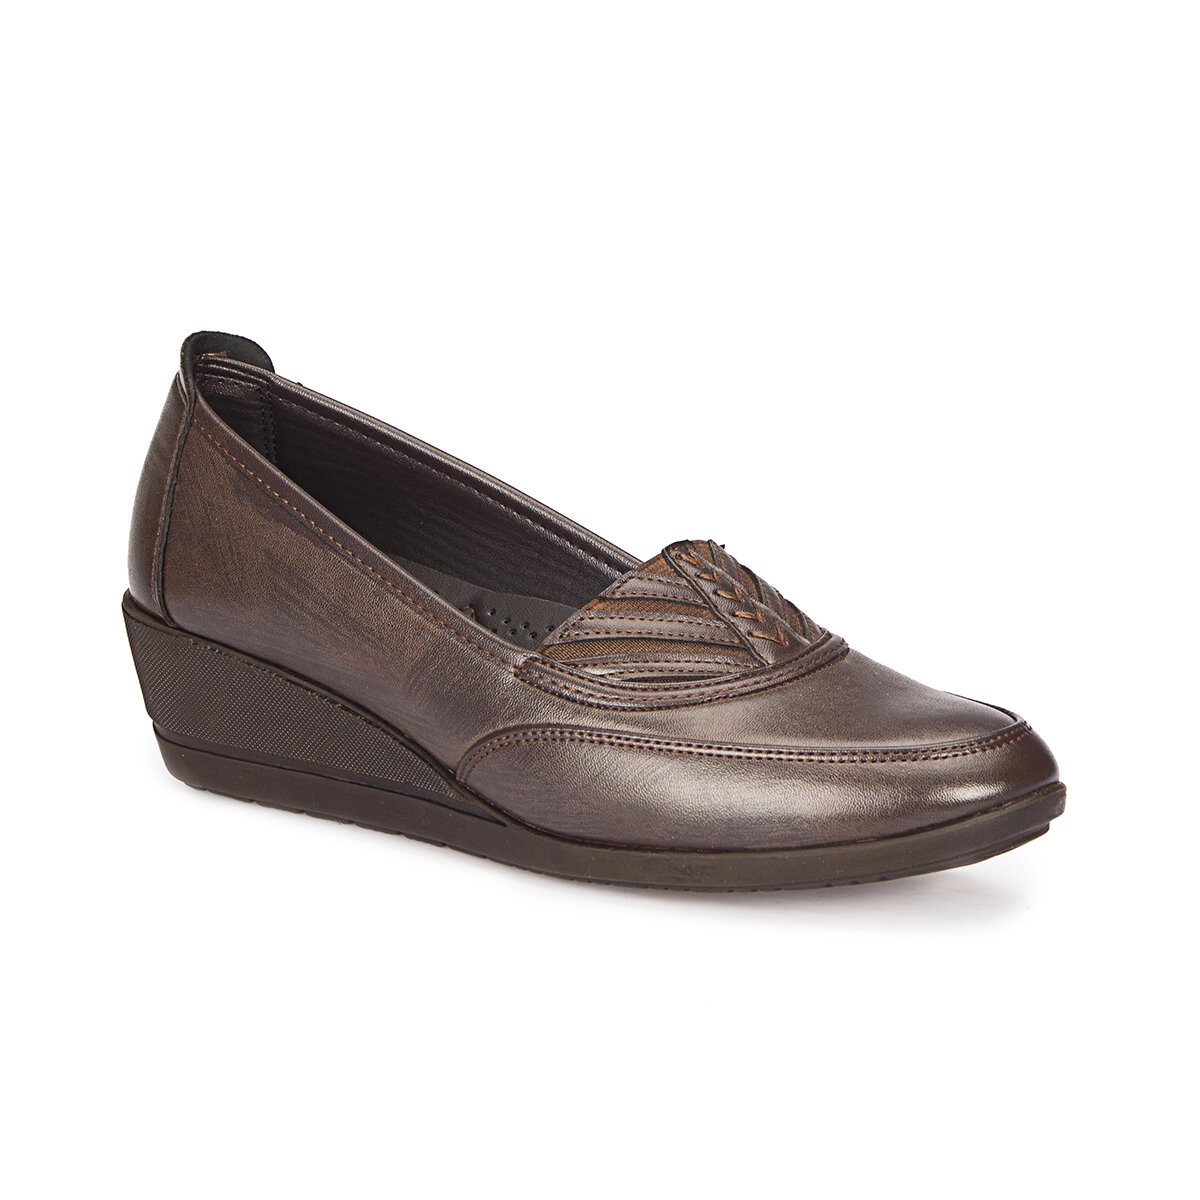 FLO 72. 158048.Z Brown Women 'S Comfort Shoes Polaris